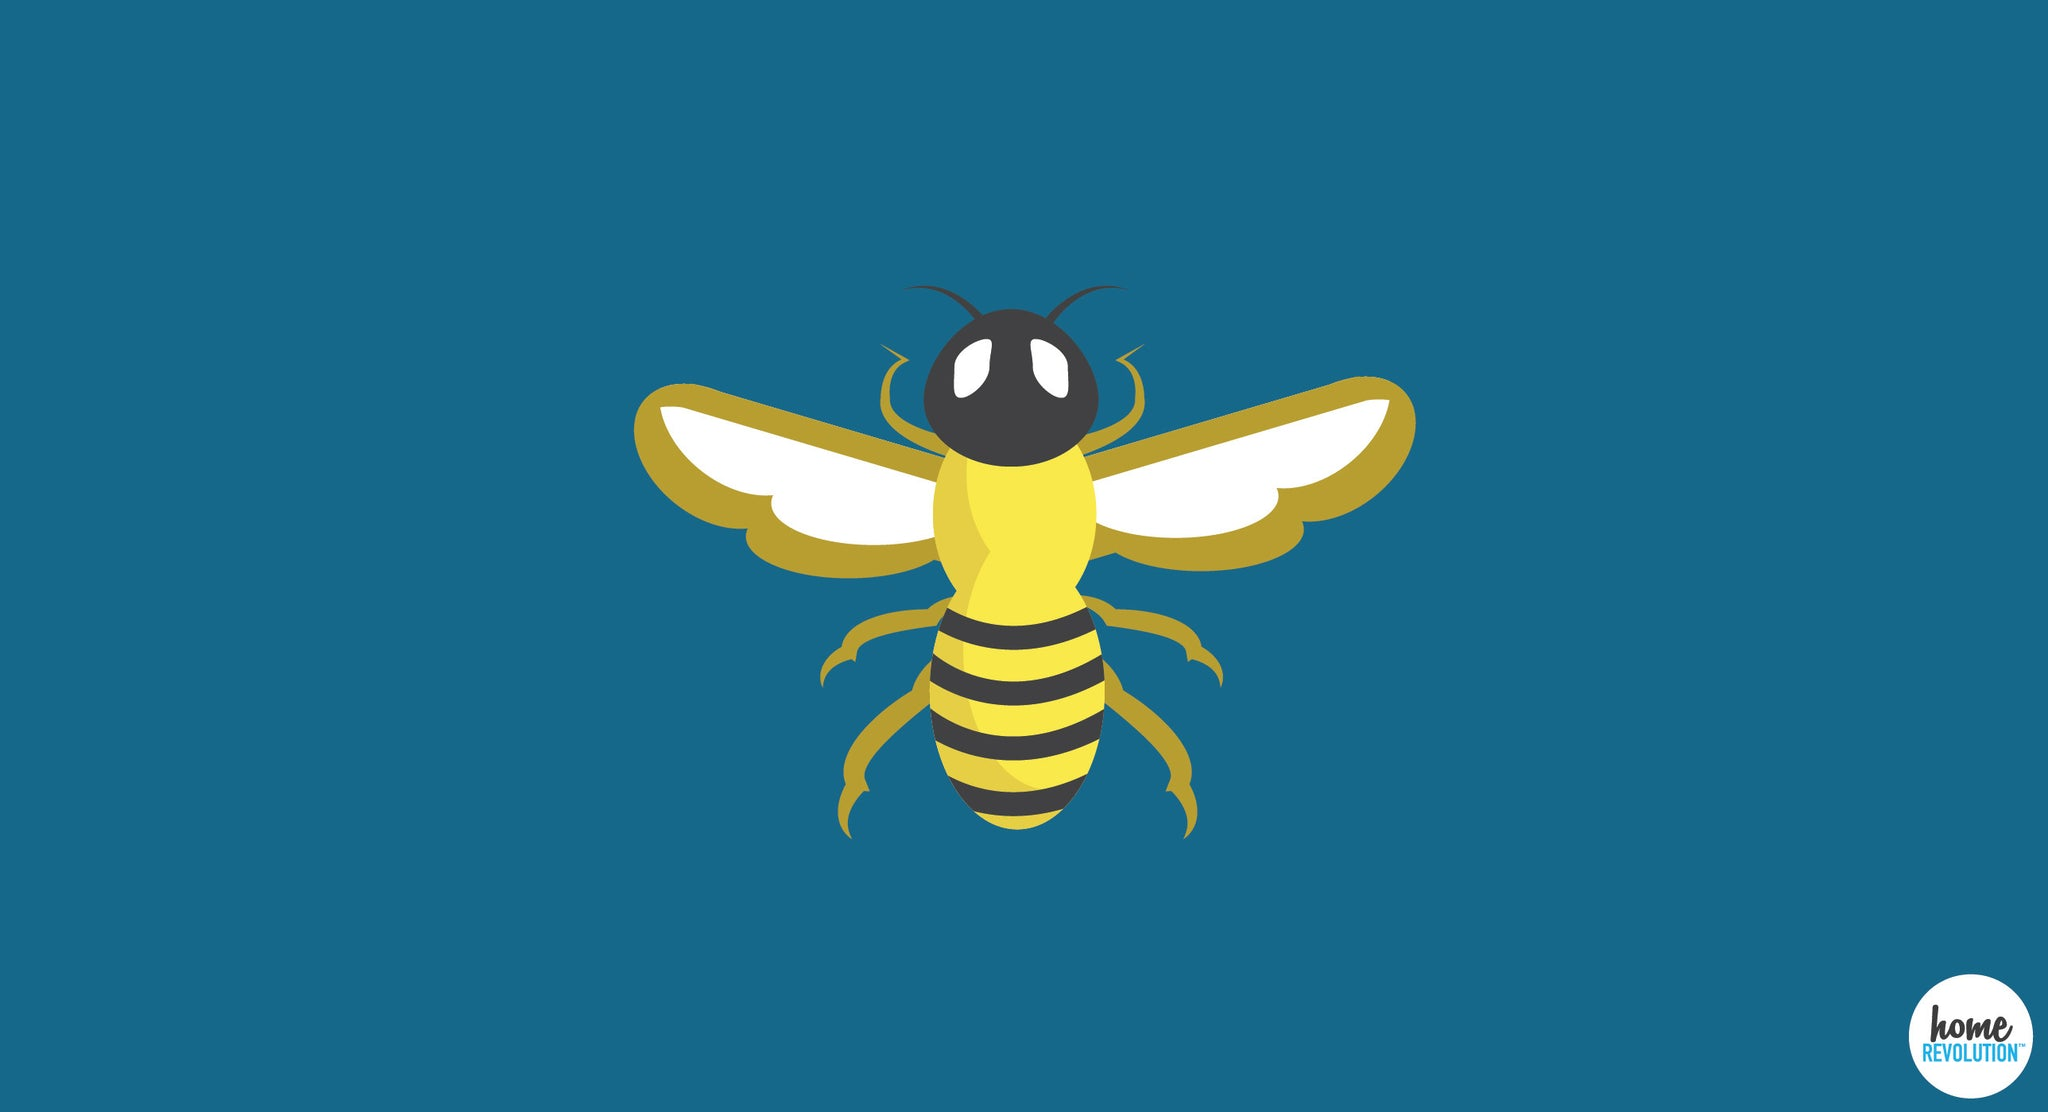 6 Natural Ways To Get Rid of Insects In Your Home - Home Revolution